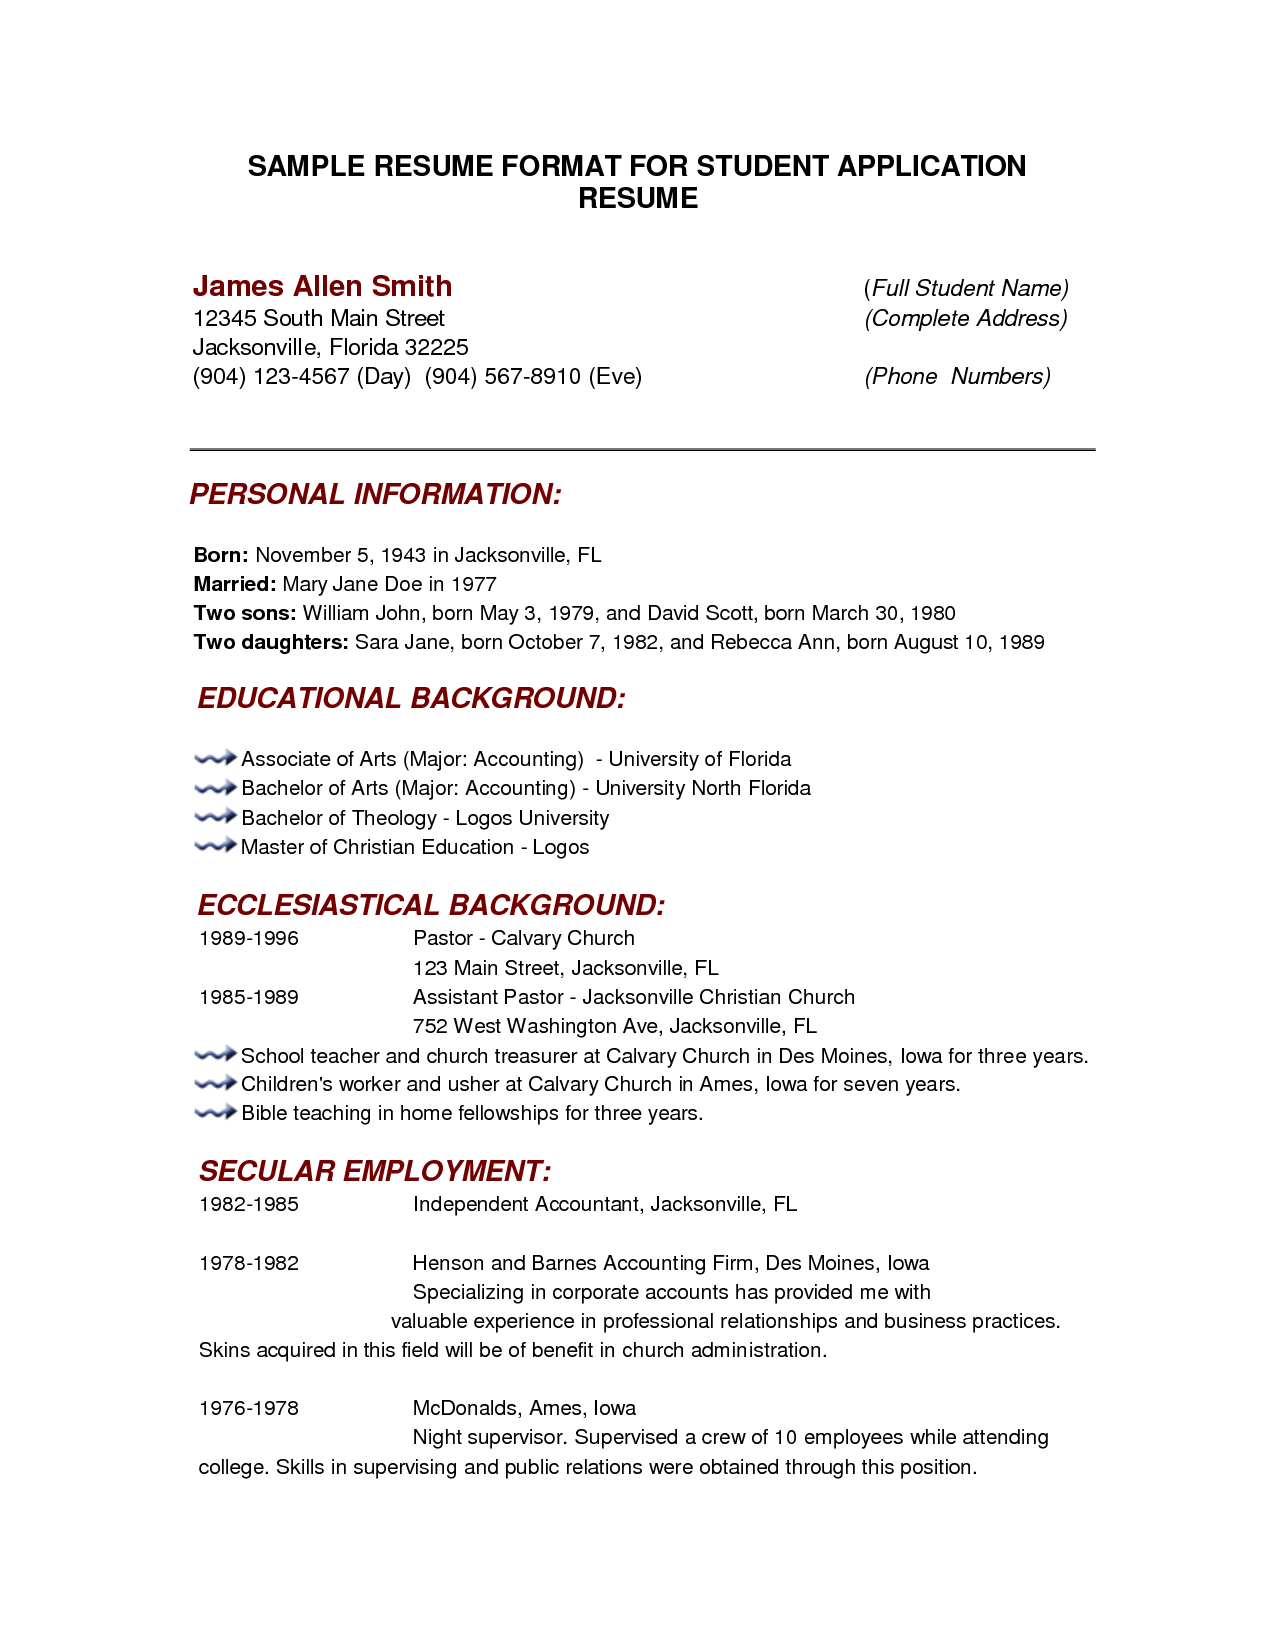 Resume Templates For College Students Resume Template For College Students  Httpwwwresumecareer